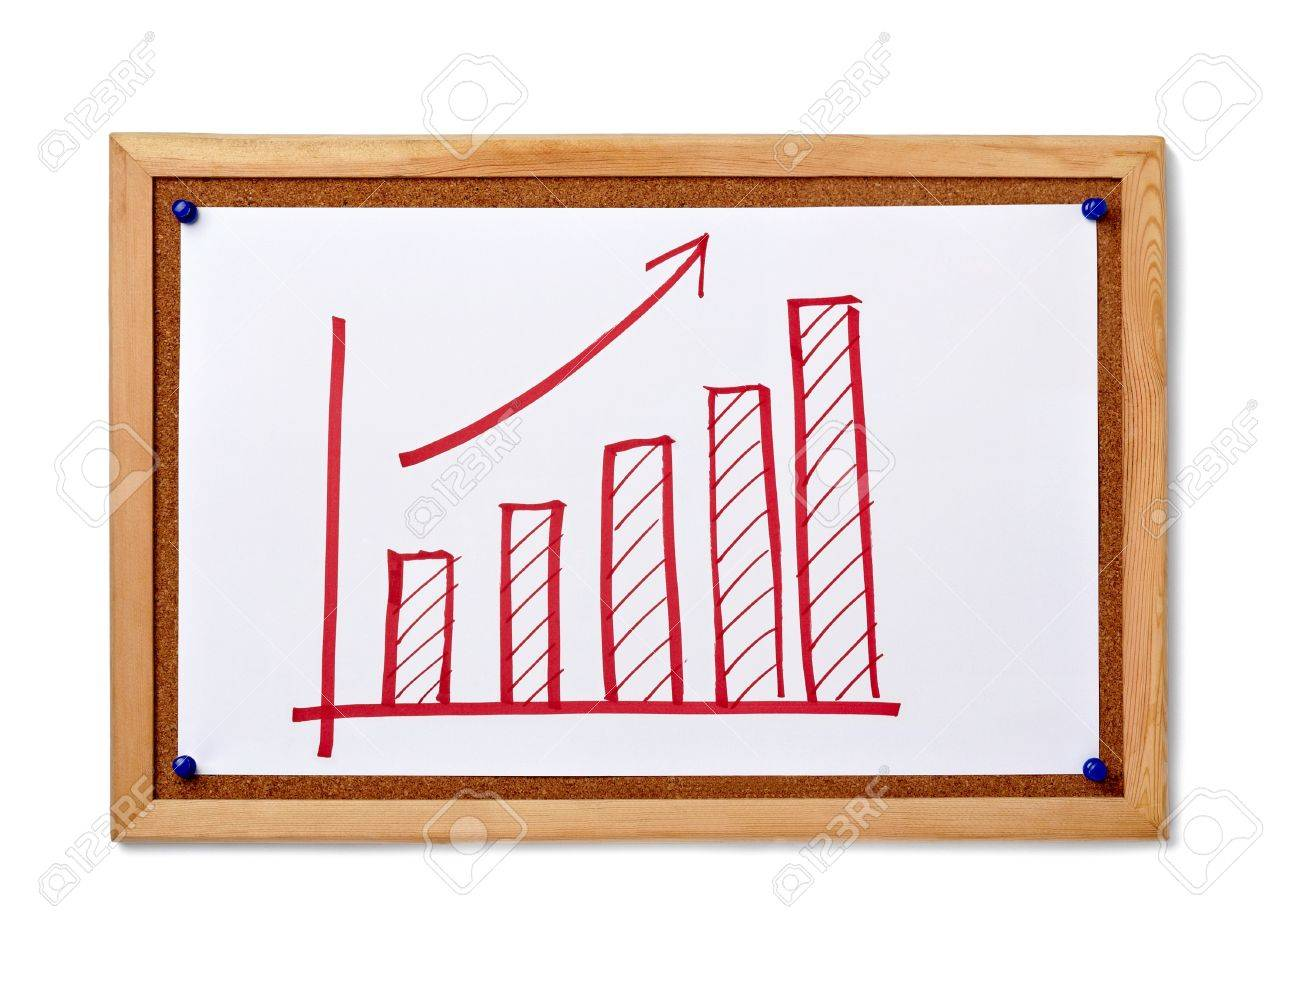 close up of corkboard with finance business graph Stock Photo - 9238049